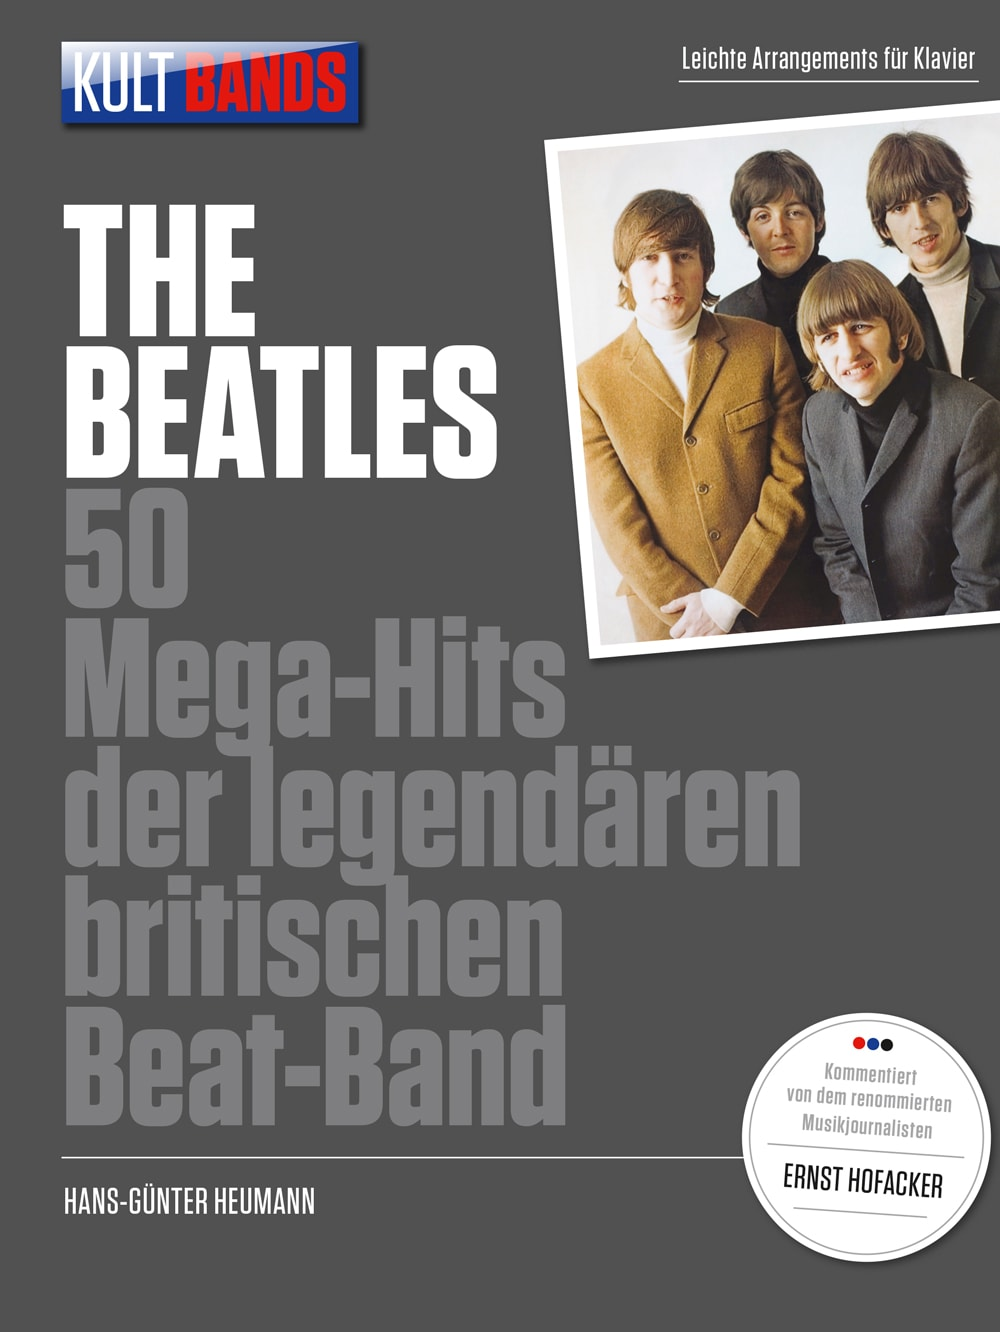 Kultbands: The Beatles